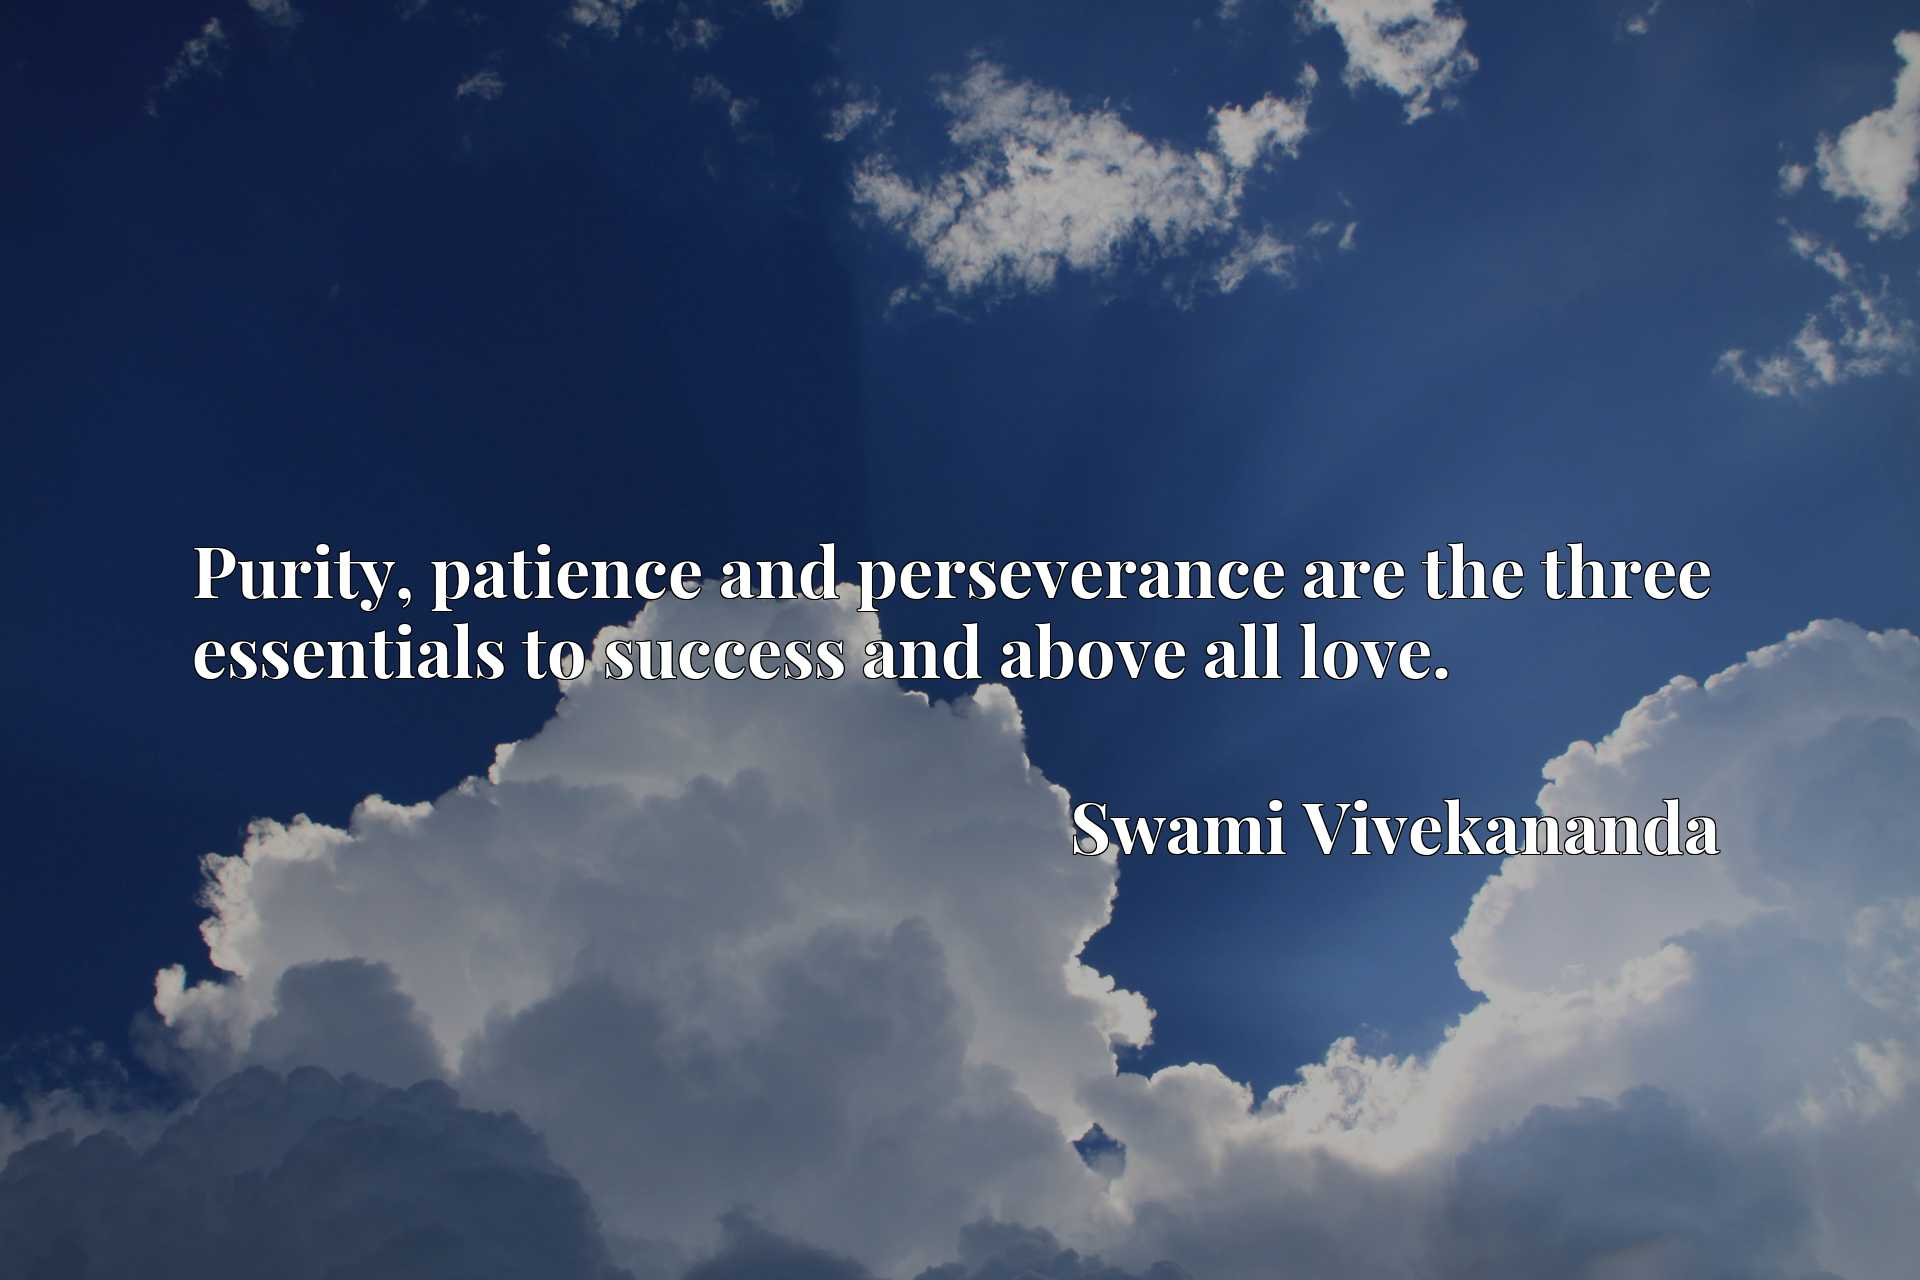 Purity, patience and perseverance are the three essentials to success and above all love.